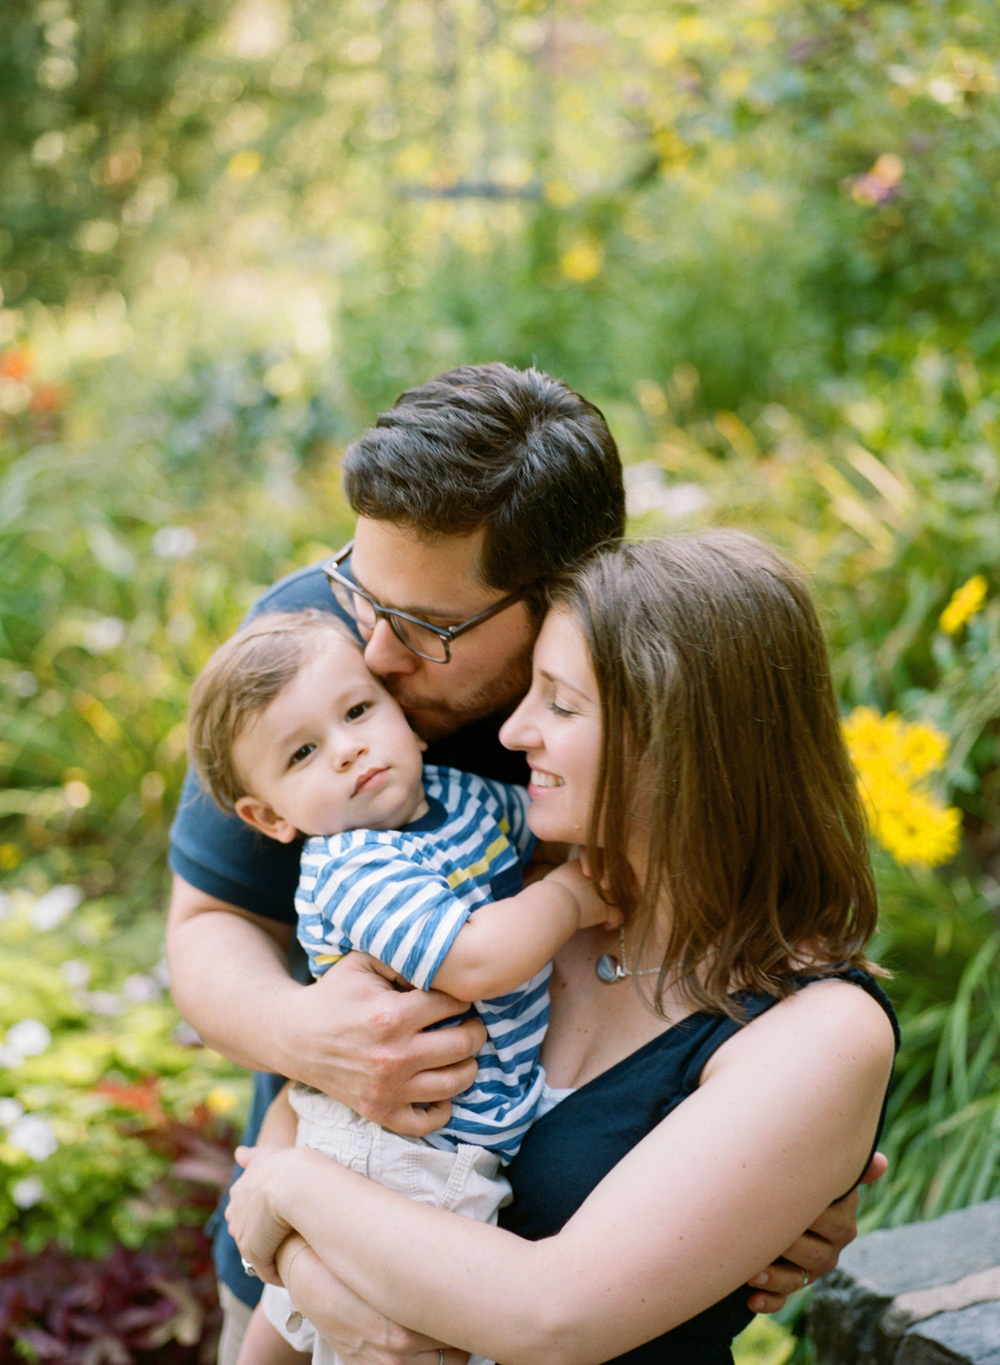 Washington DC Family Photographer | Brookside Gardens | Maryland Portrait Photographer | Washington DC Film Photography | Washington DC Wedding Photographer